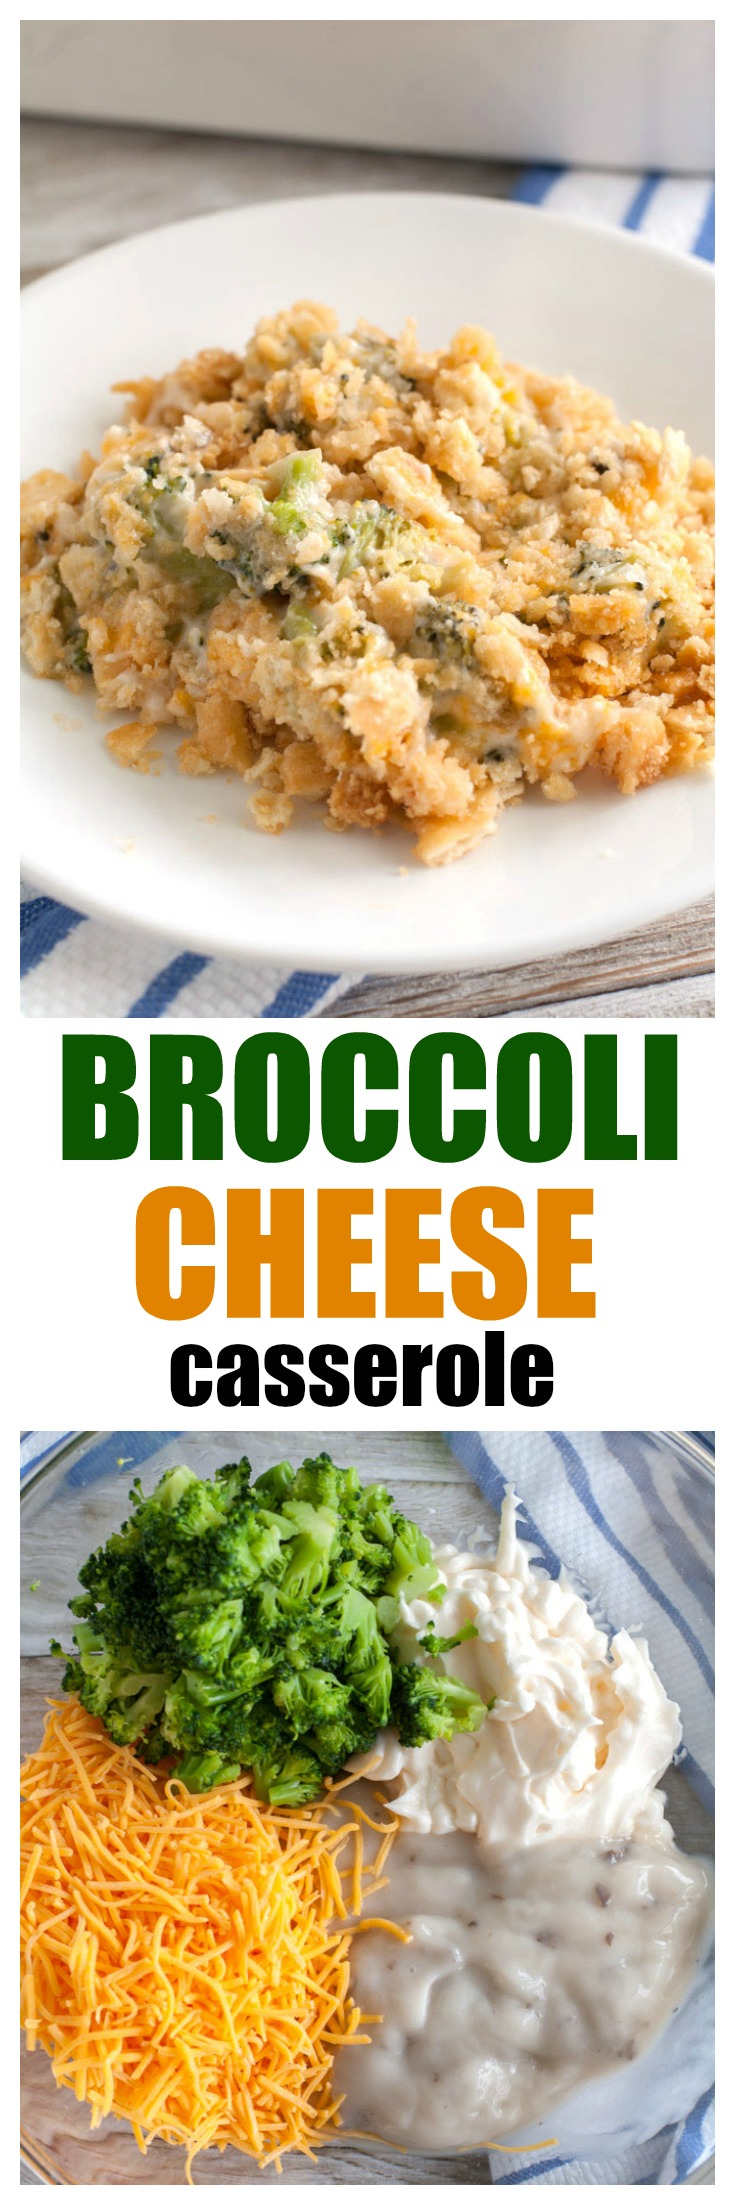 Broccoli Cheese Casserole is a creamy cheesy side dish topped with buttery cracker crumbs. I love serving this at holiday meals or as a side for chicken, pork or steak. #broccolicheesecasserole #casserole #broccoli #broccolicheese